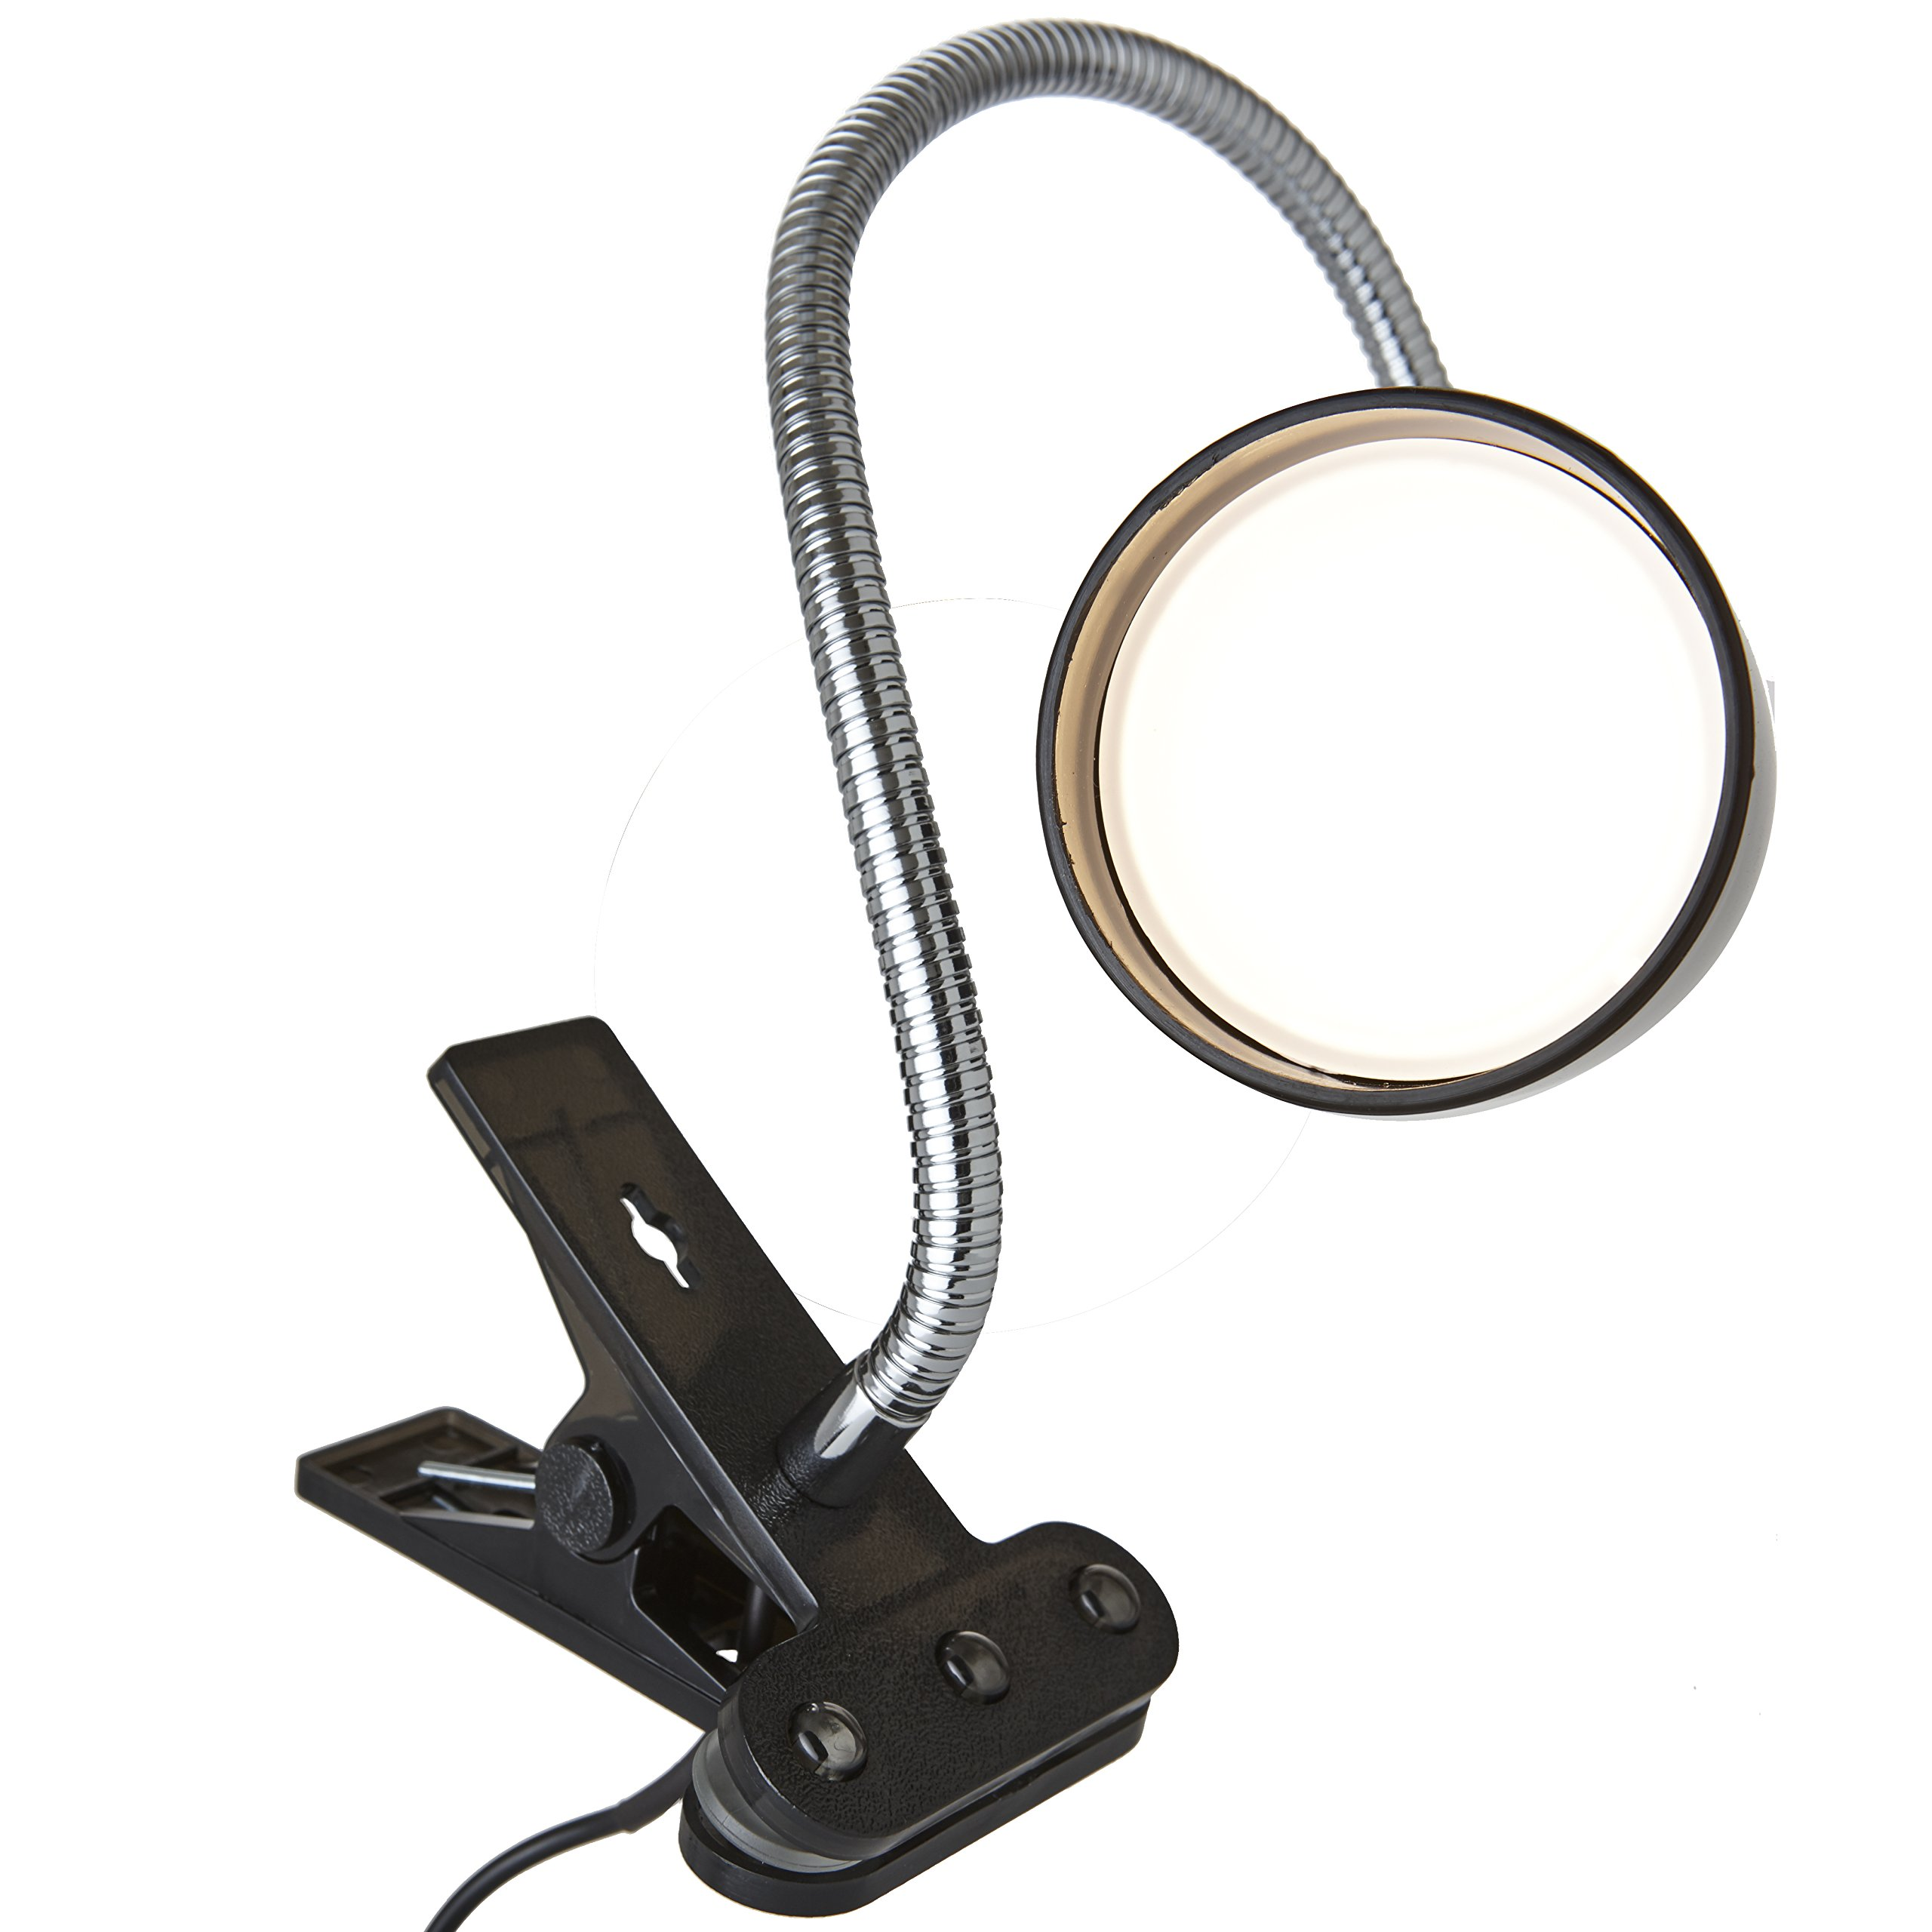 Newhouse Lighting 3W Energy-Efficient LED Clamp Lamp Light, Black by Newhouse Lighting (Image #4)